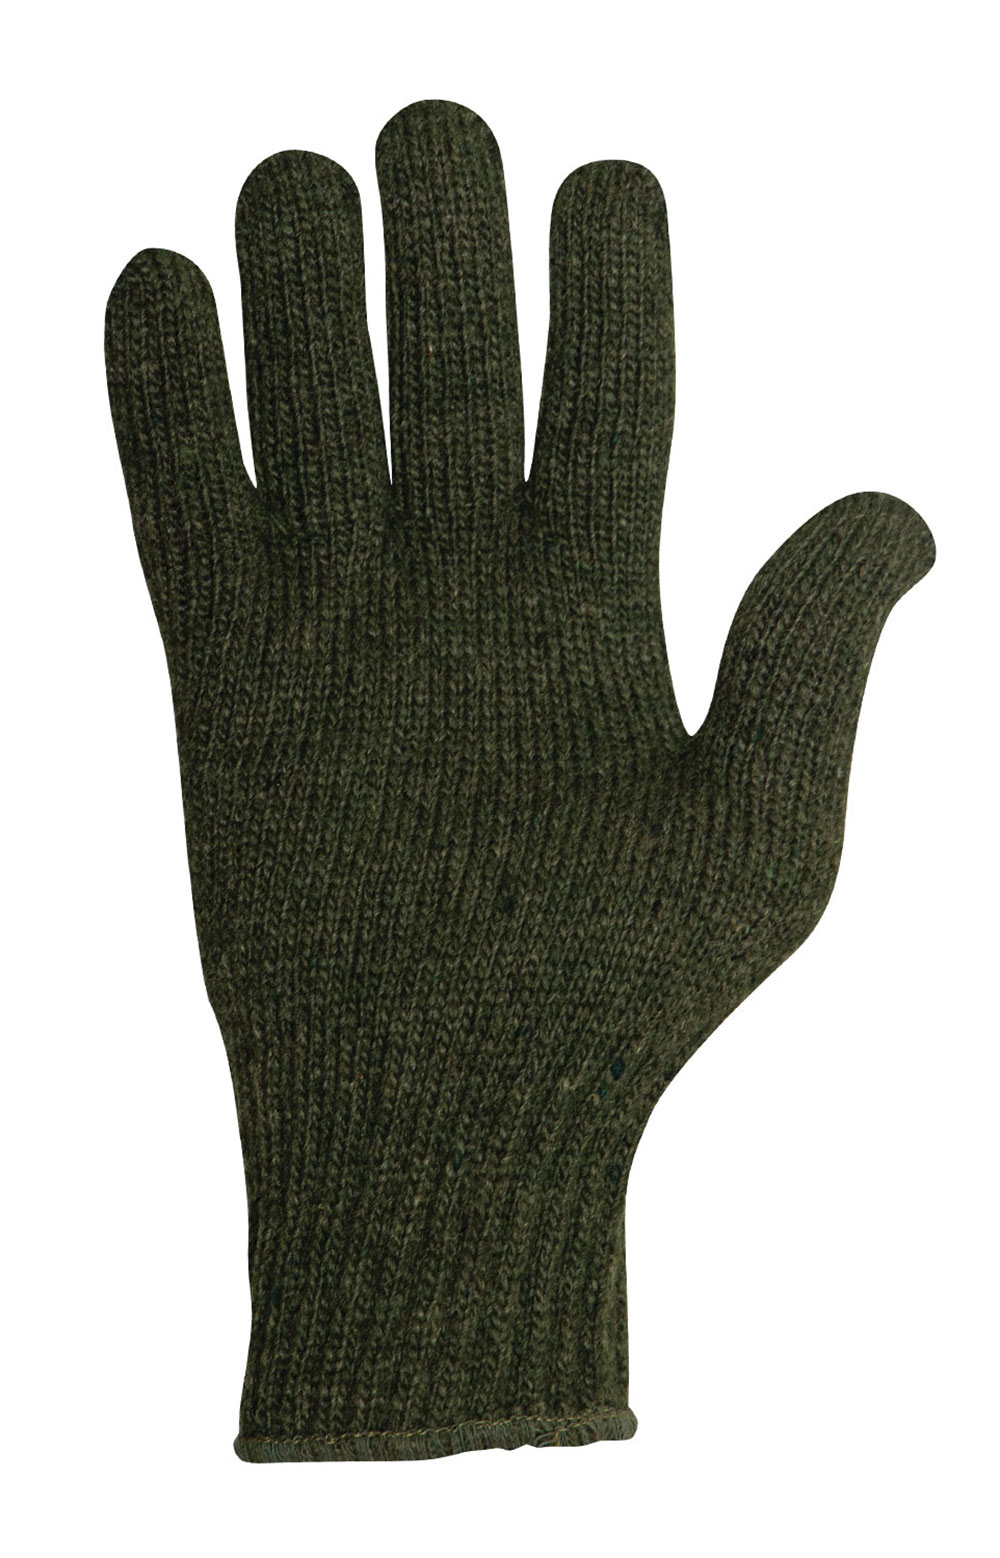 (8218) Wool Glove Liners - Olive Drab 2